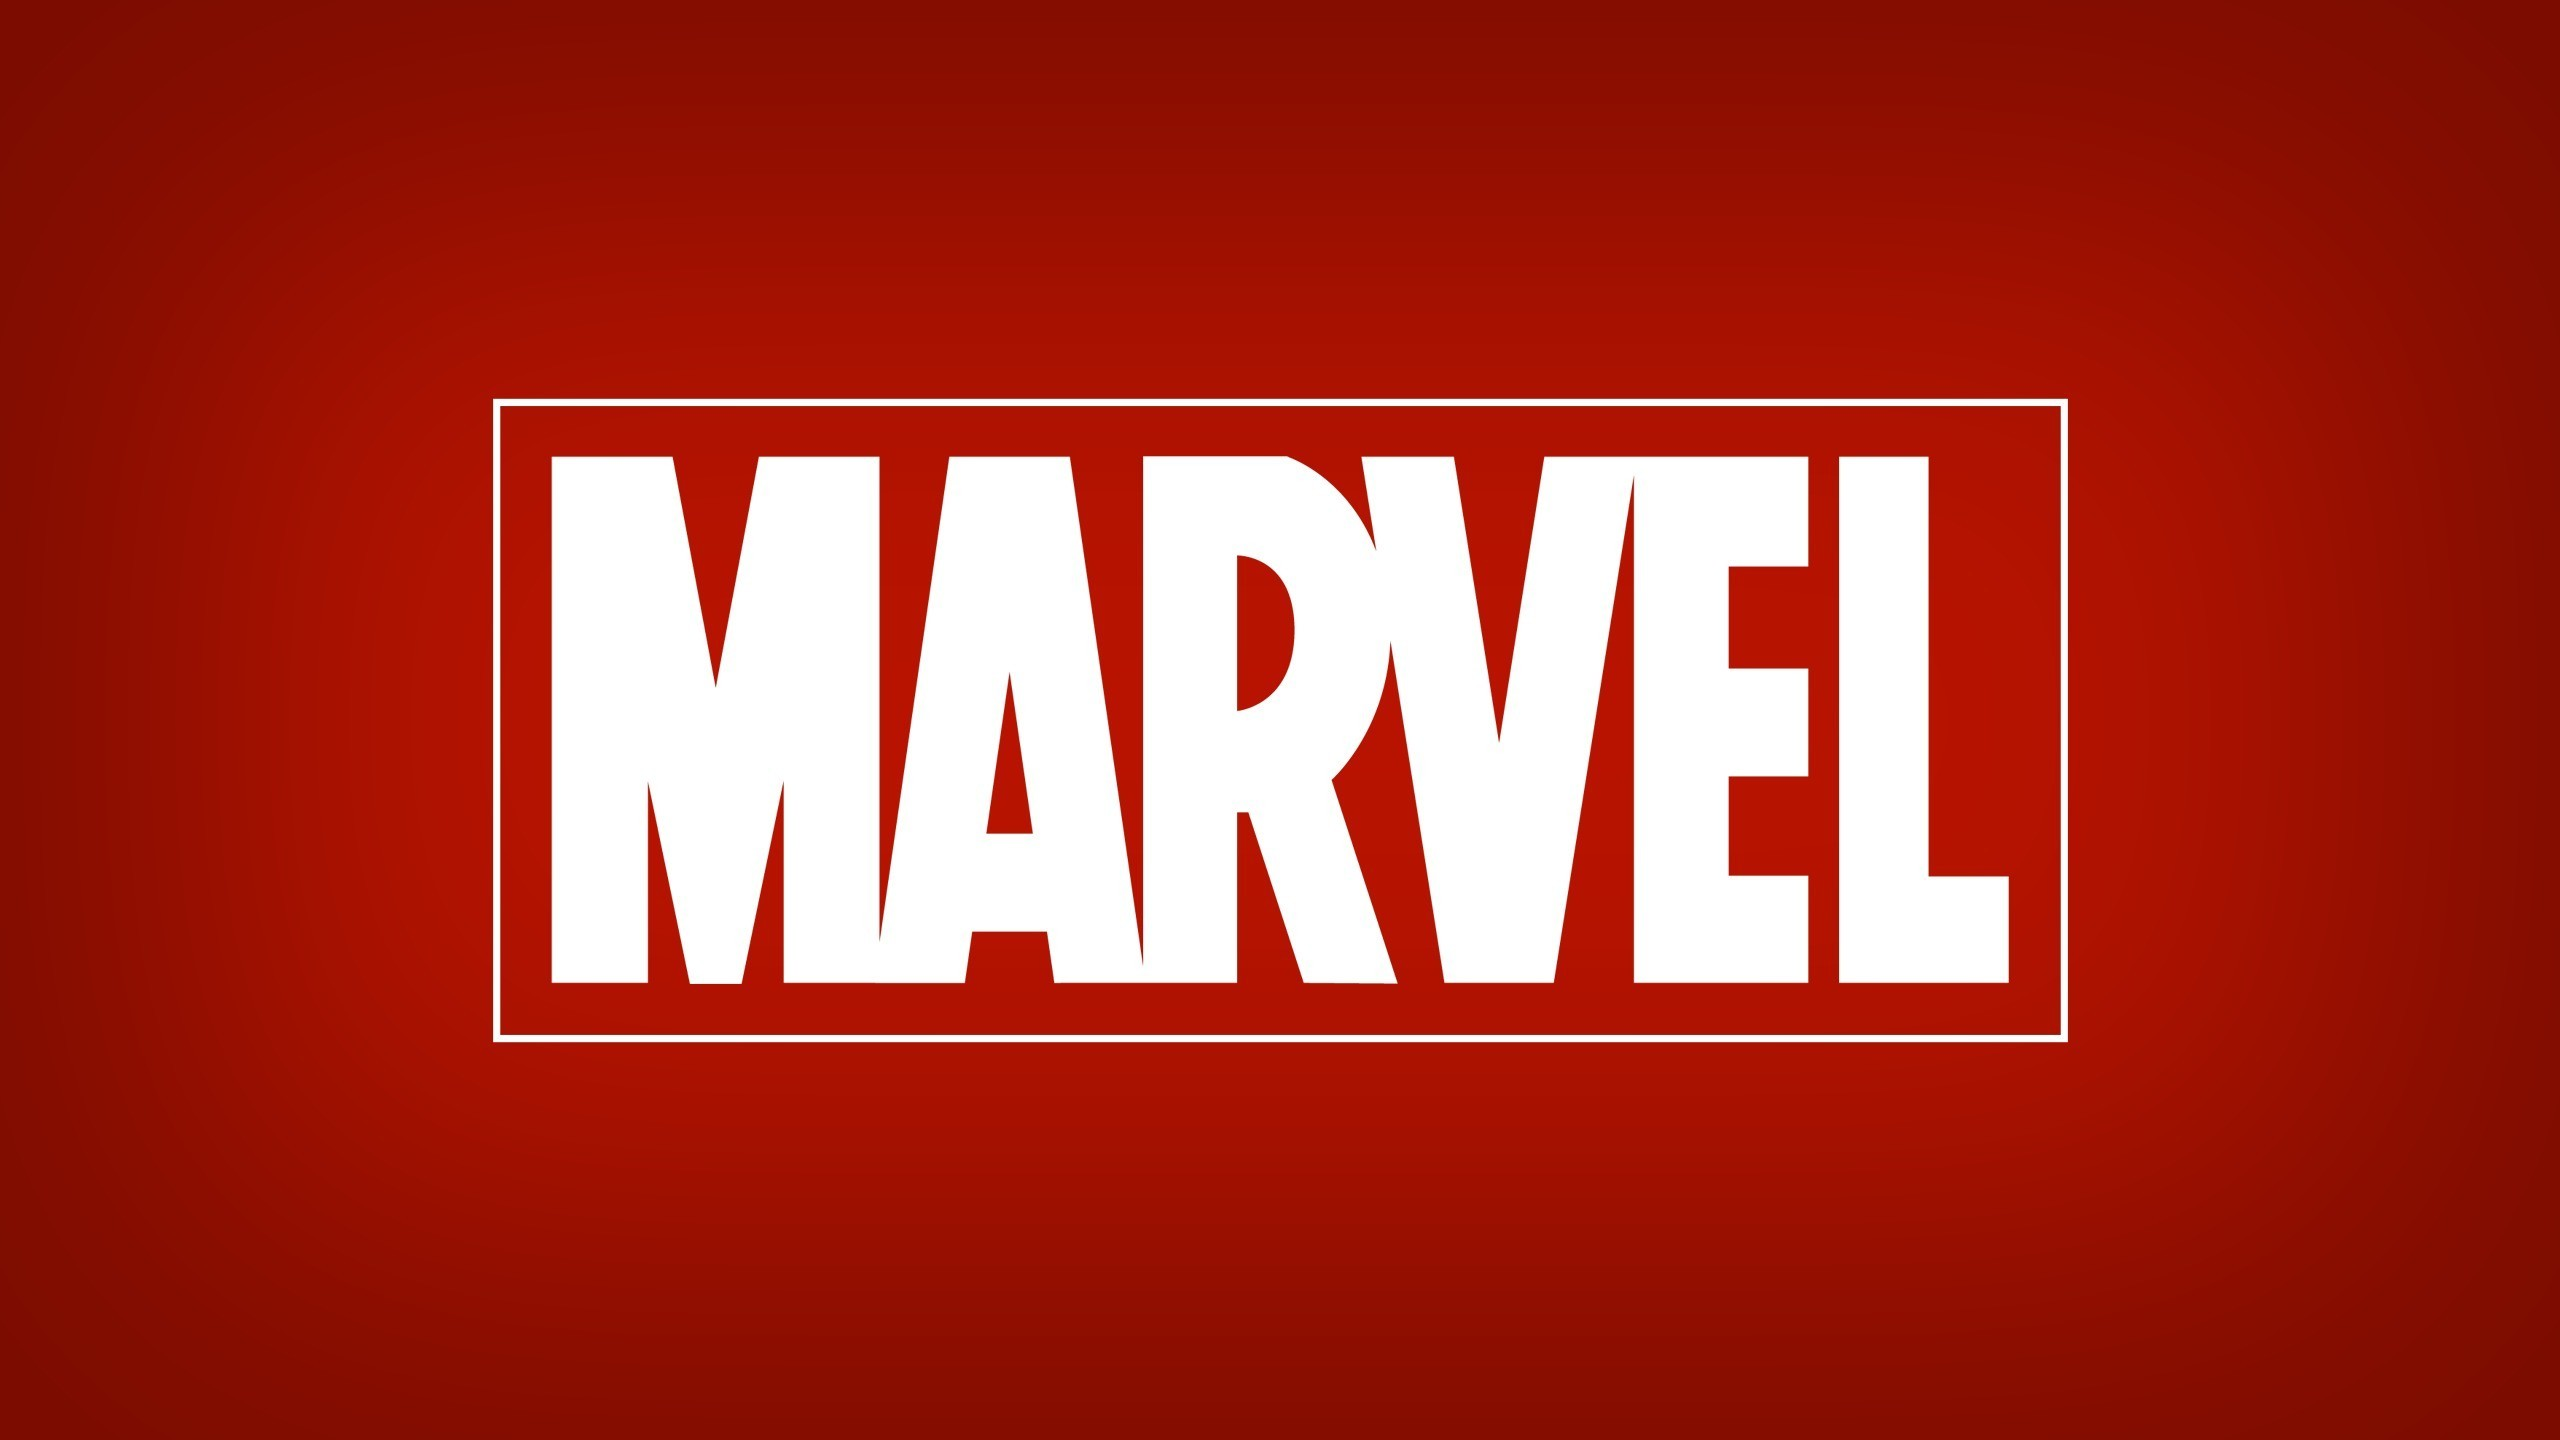 General 2560x1440 Marvel Comics red logo